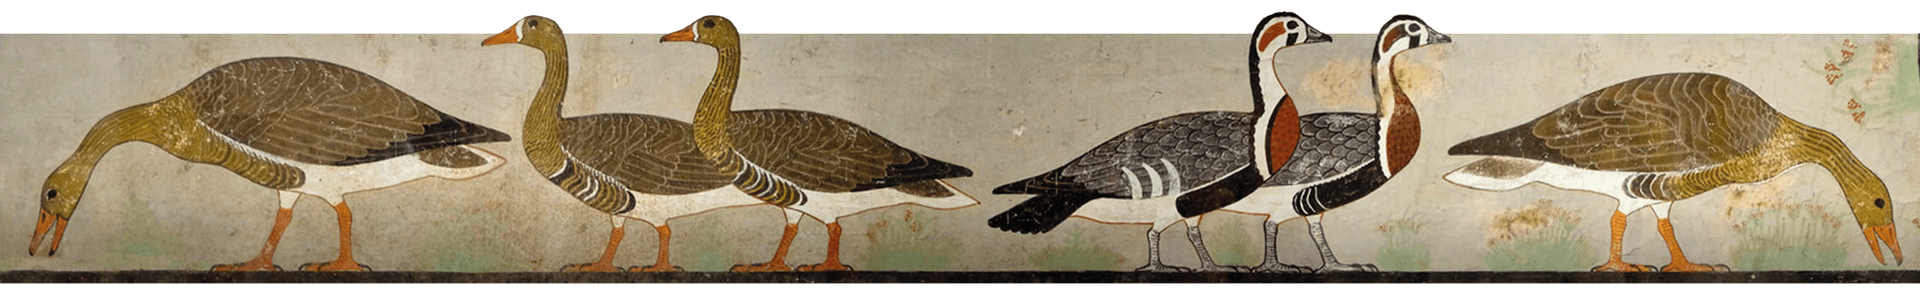 Geese Frieze, Egypt, Ancient World Tours, Options